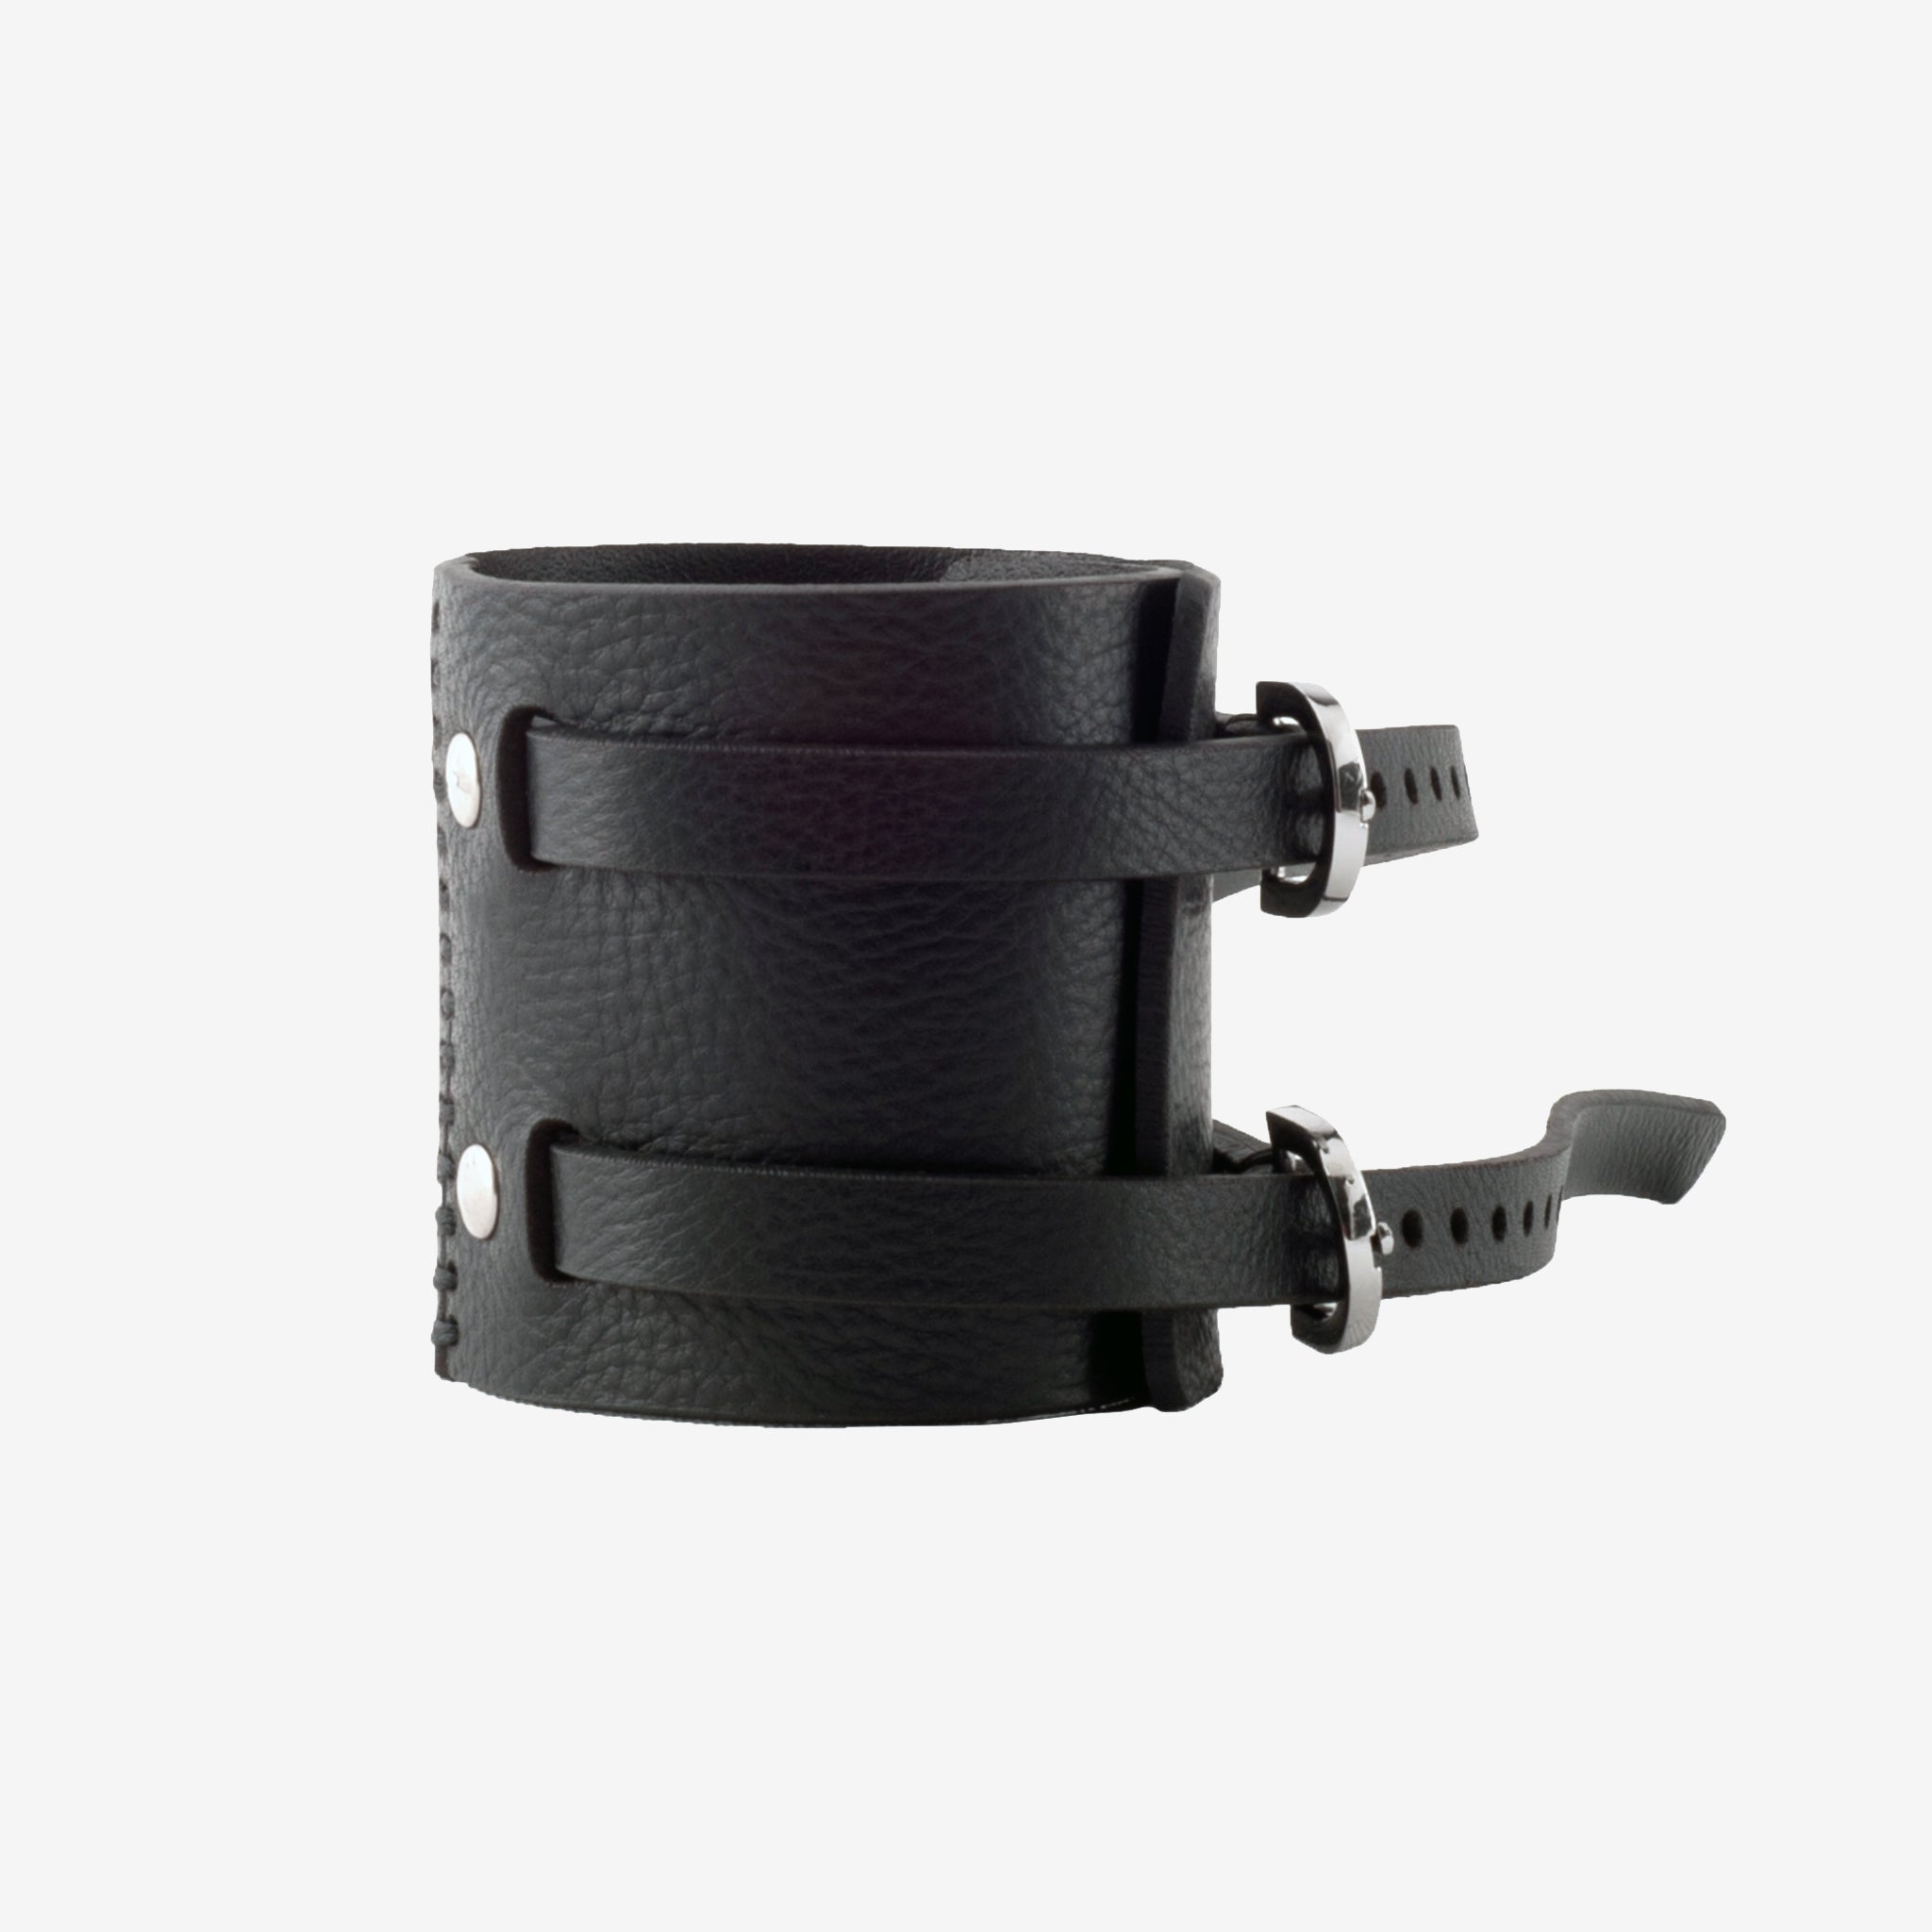 C60 Leather Harm Cuff - 0770shop